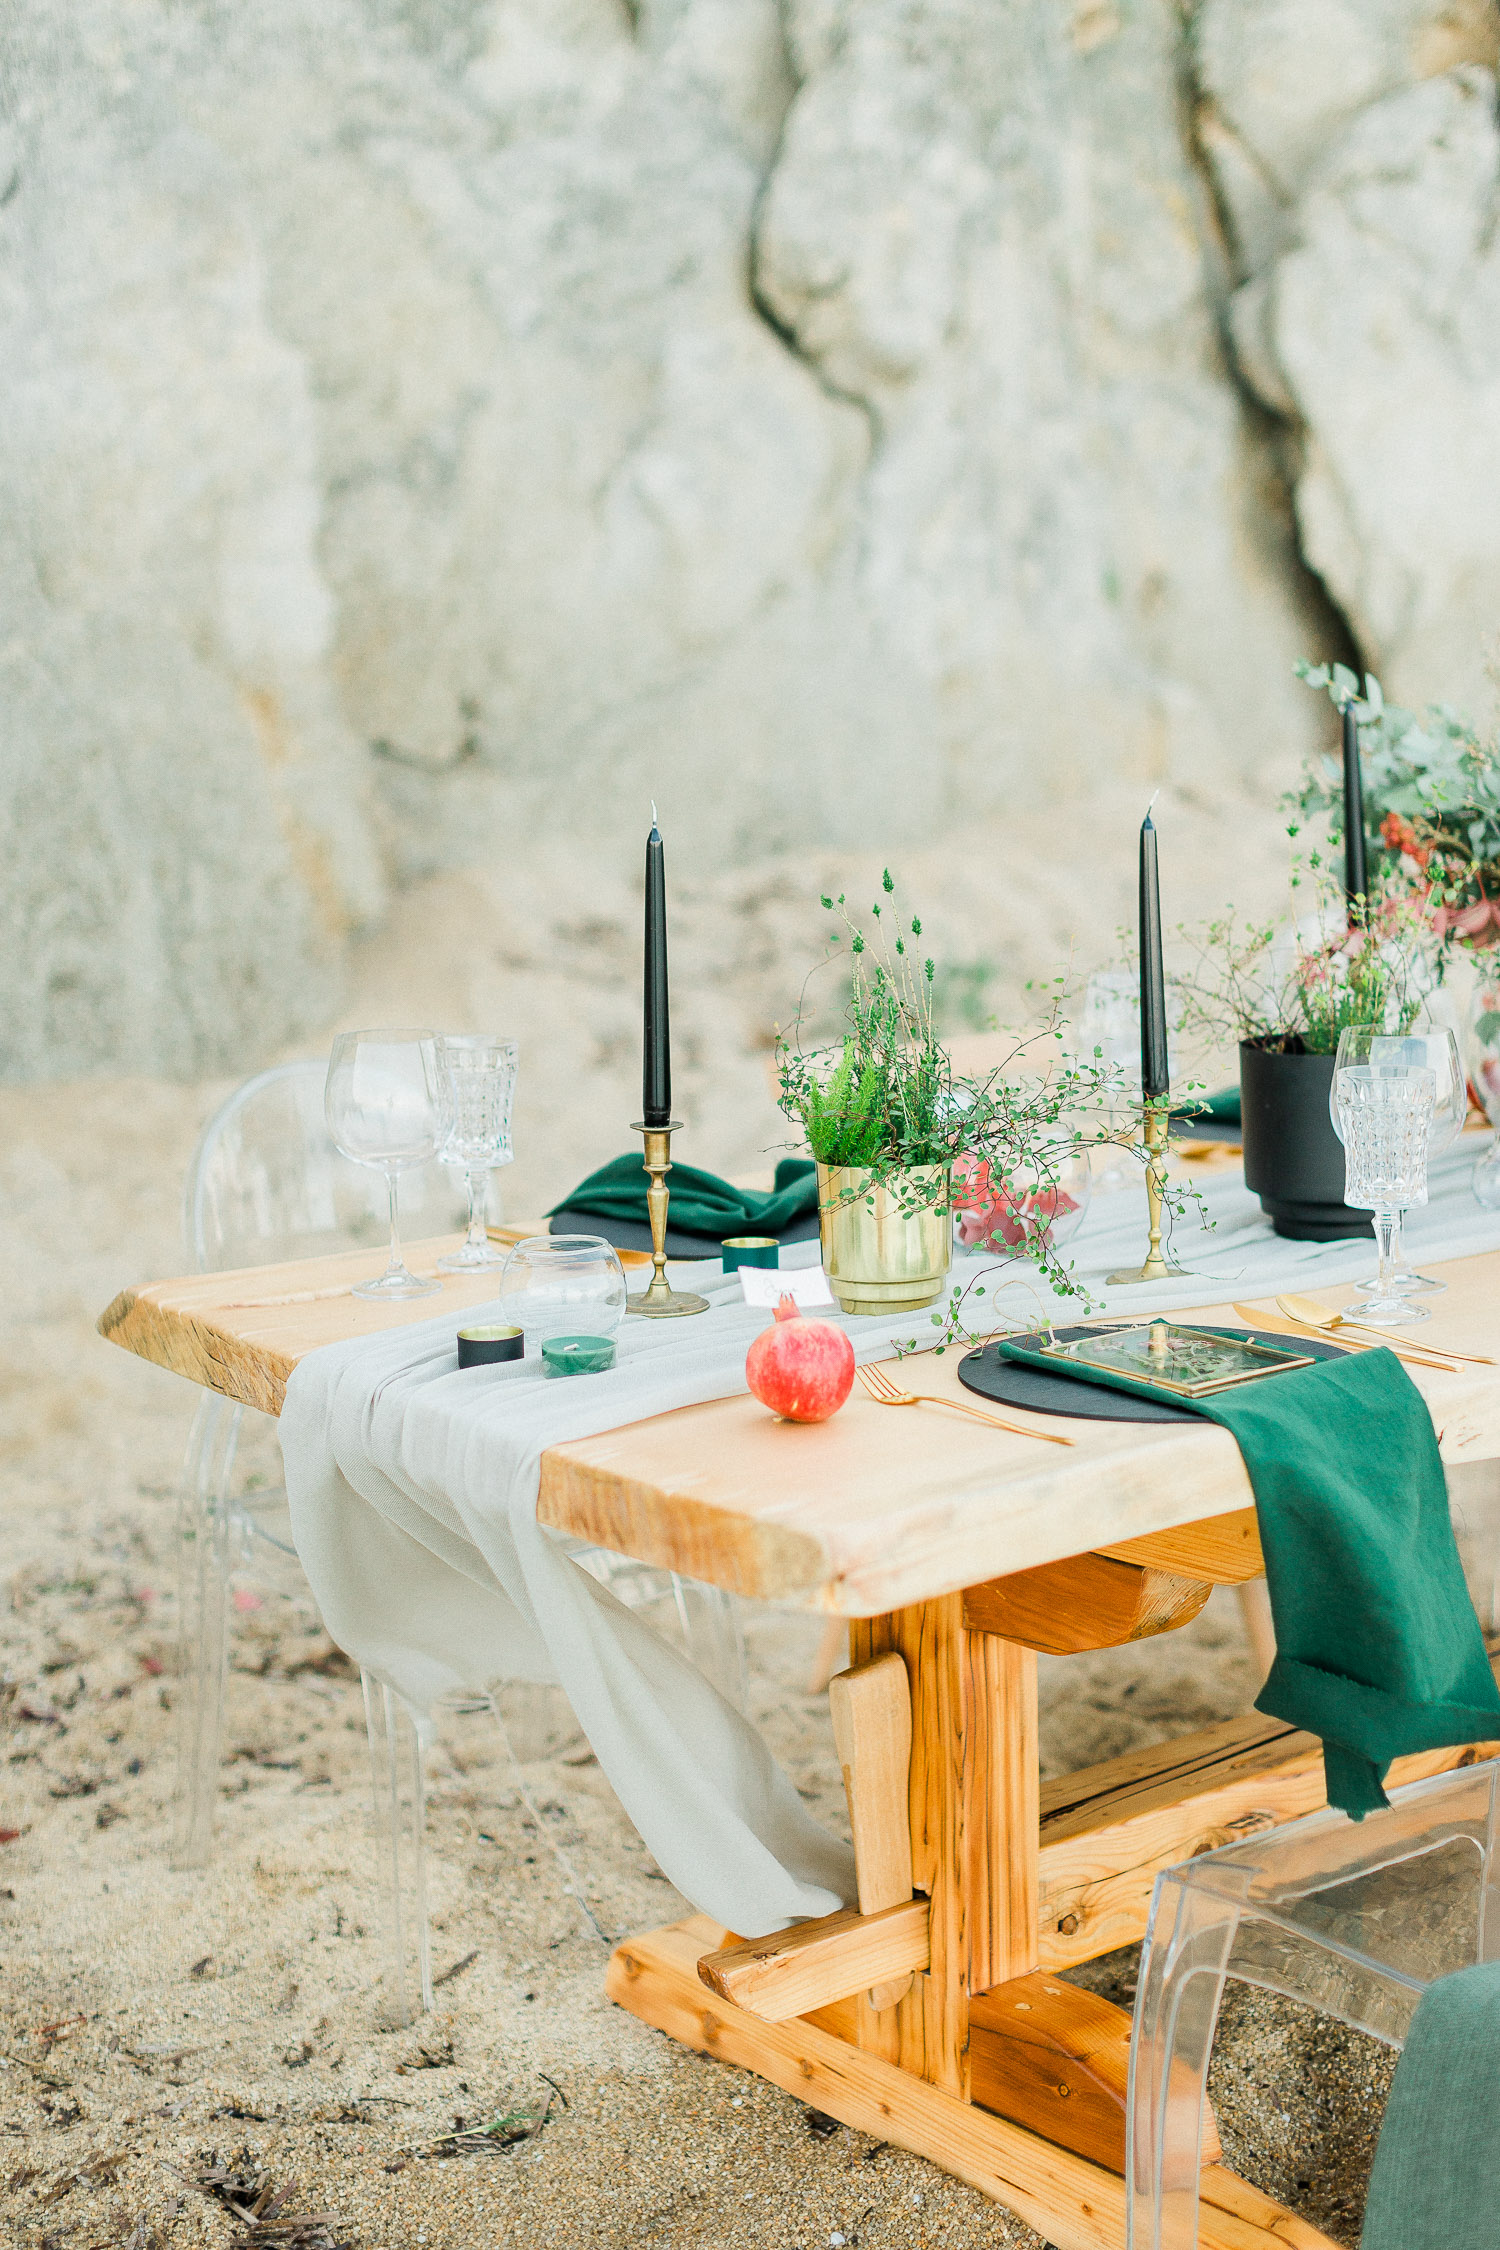 table set up on a rocky beach in Halkidiki, Greece